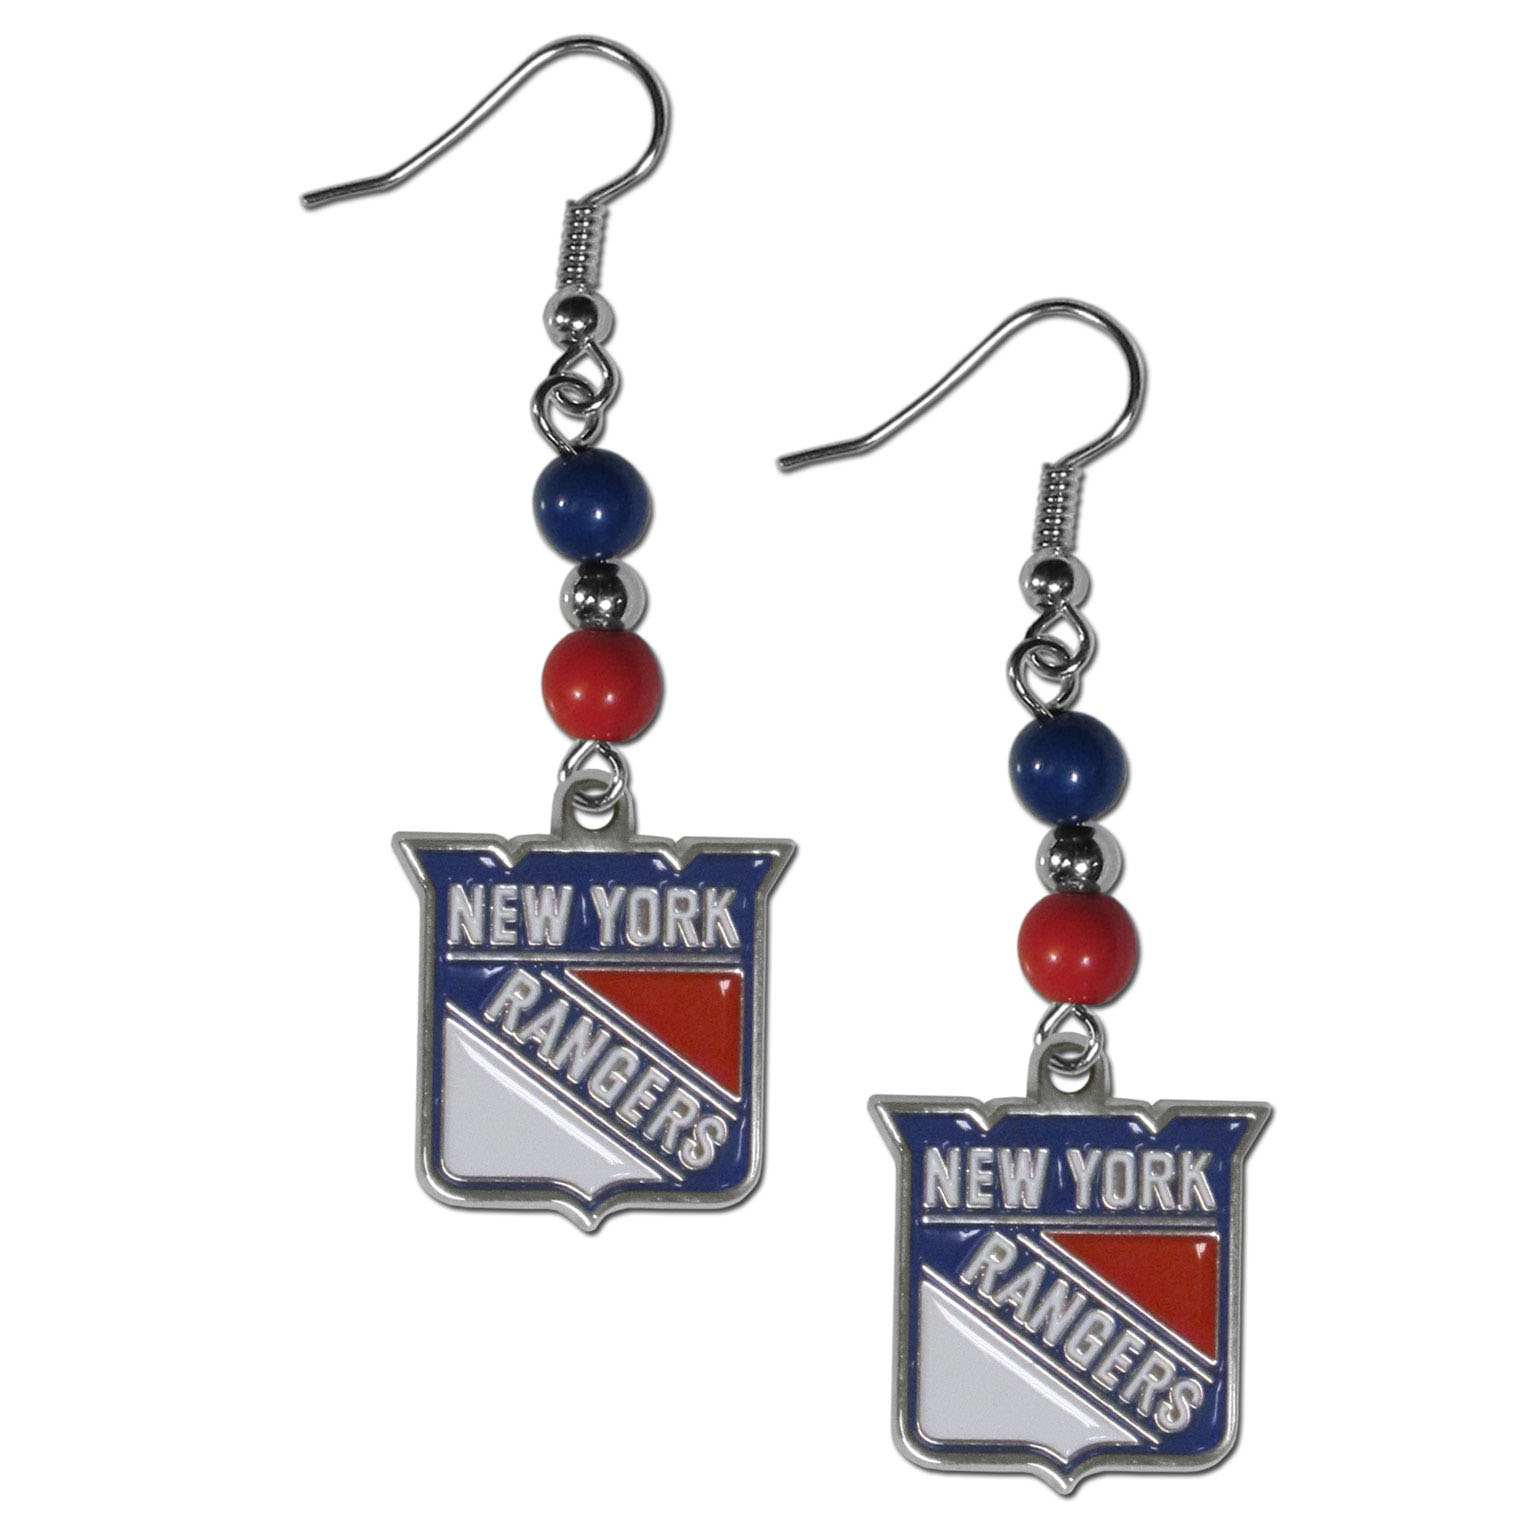 New York Rangers® Fan Bead Dangle Earrings - Love your team, show it off with our New York Rangers® bead dangle earrings! These super cute earrings hang approximately 2 inches and features 2 team colored beads and a high polish team charm. A must have for game day!